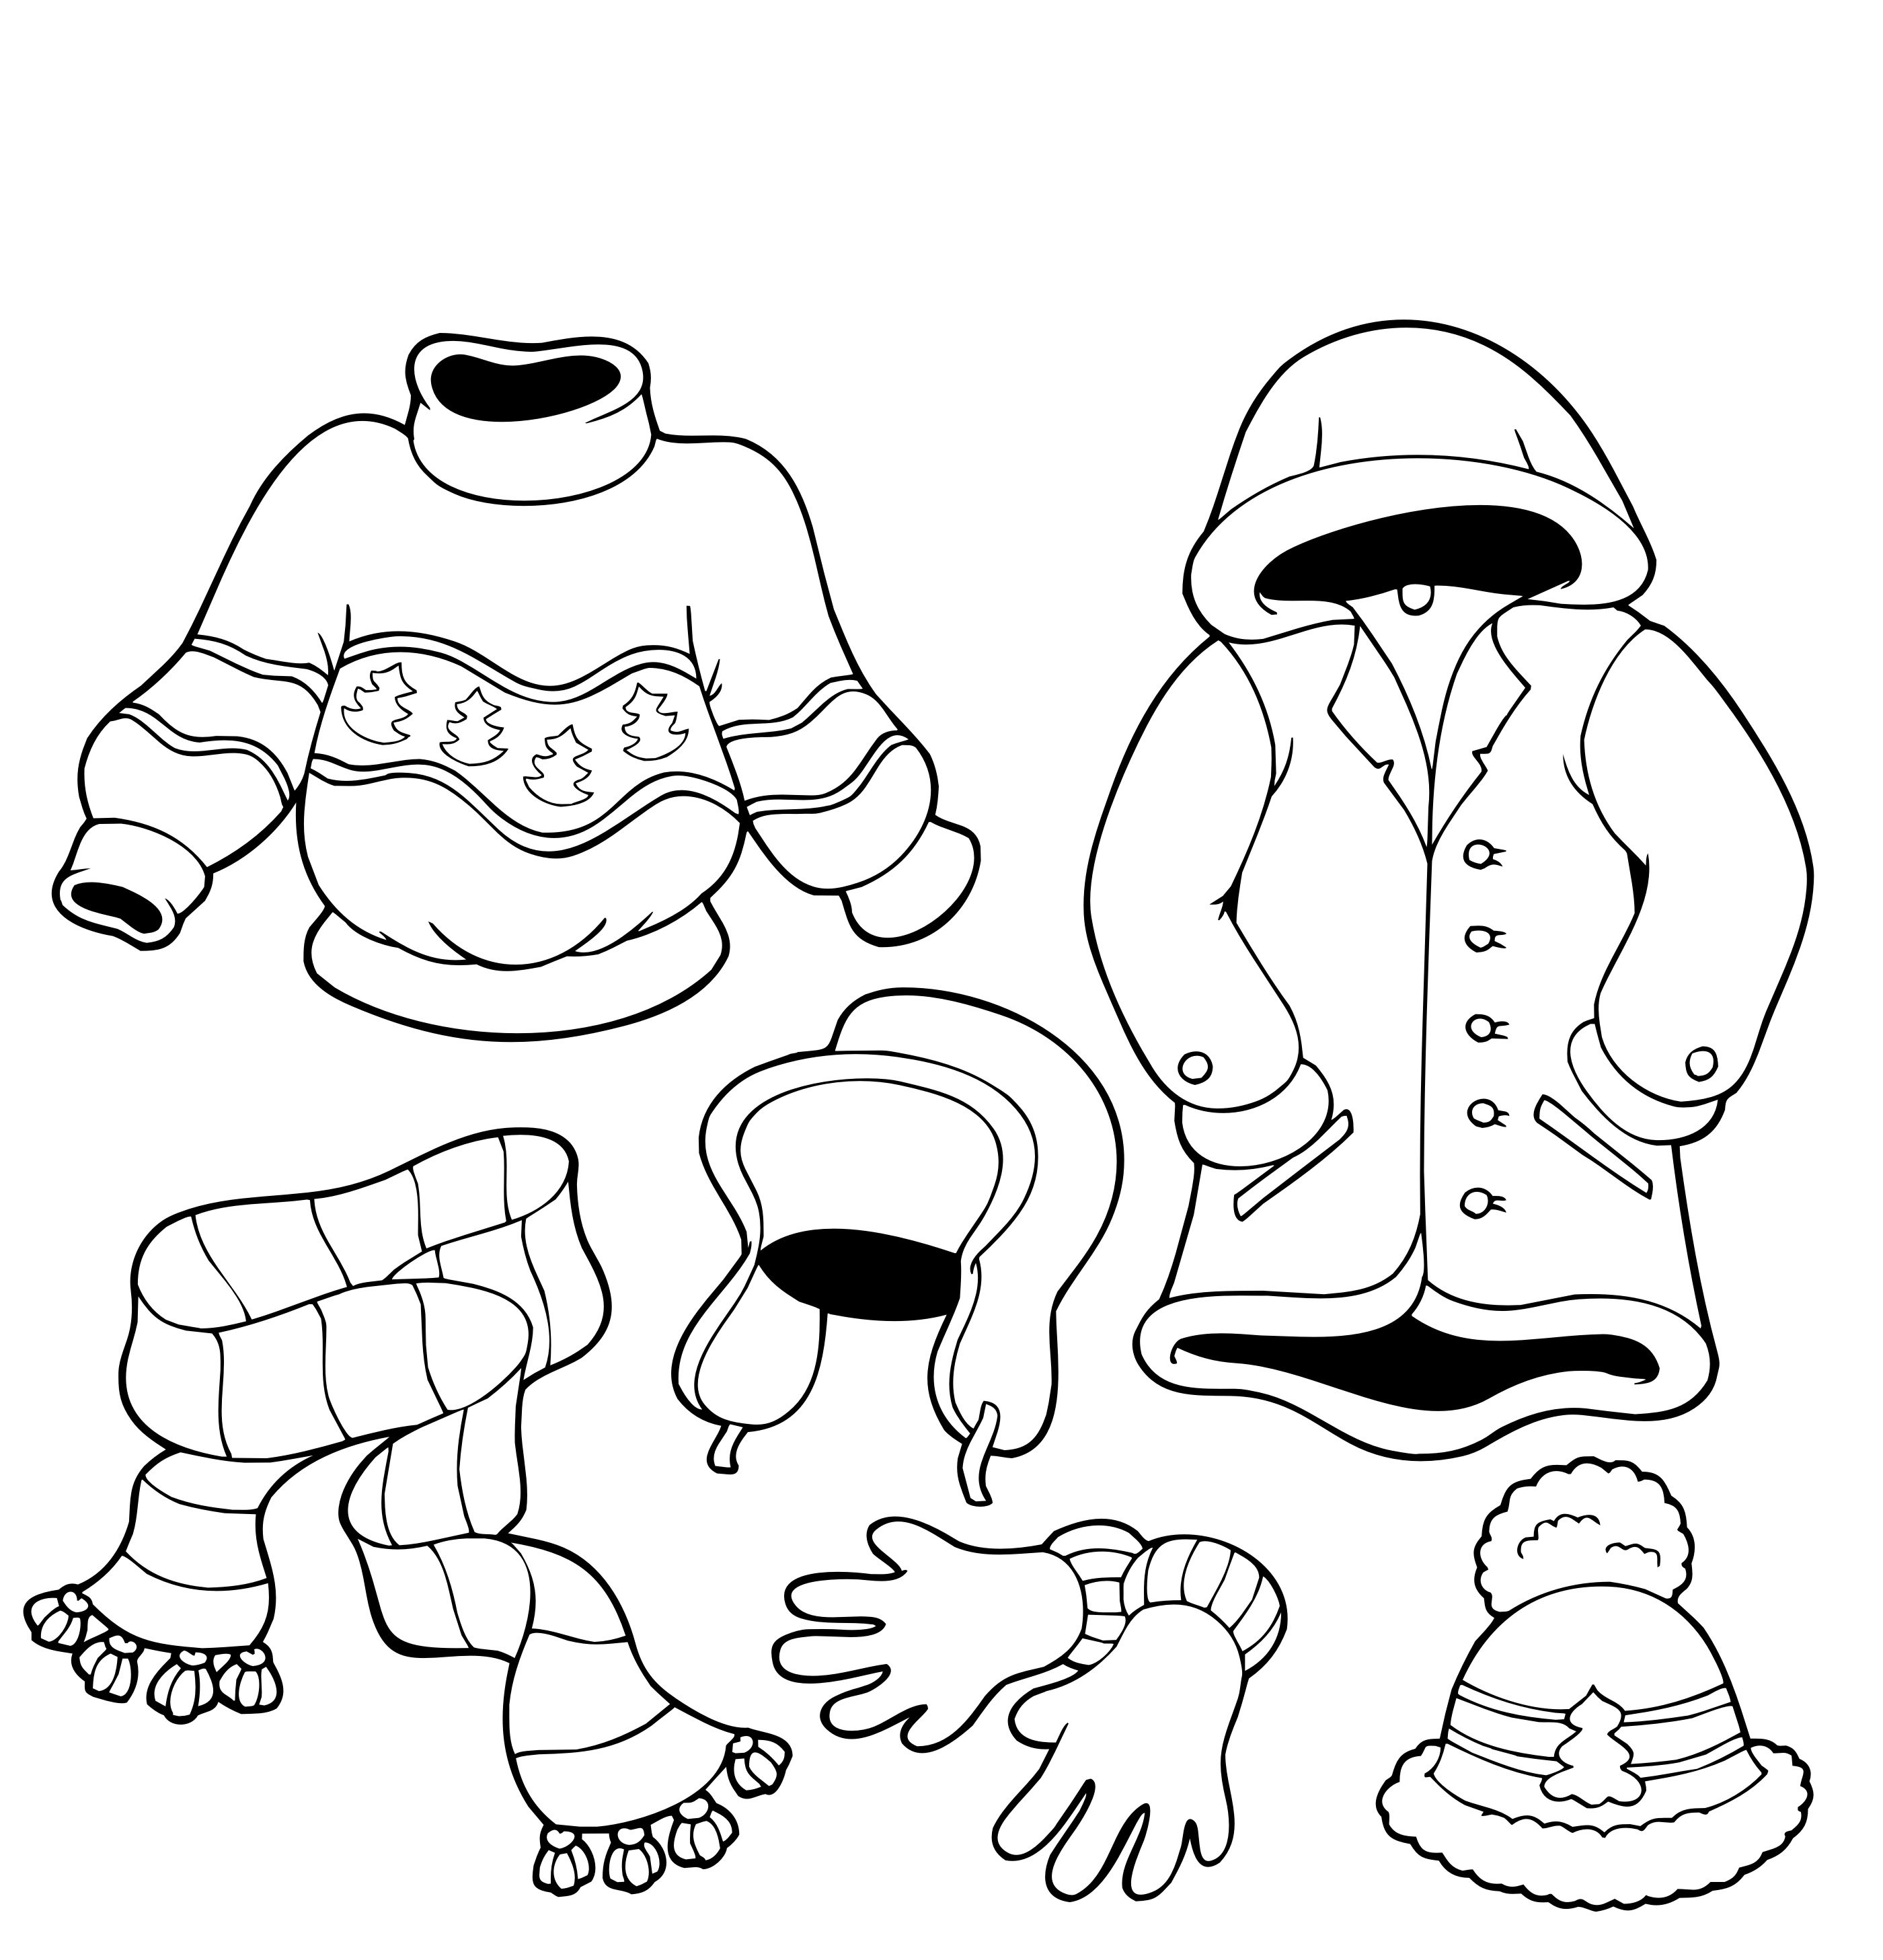 winter coloring winter season coloring pages crafts and worksheets for coloring winter 1 1